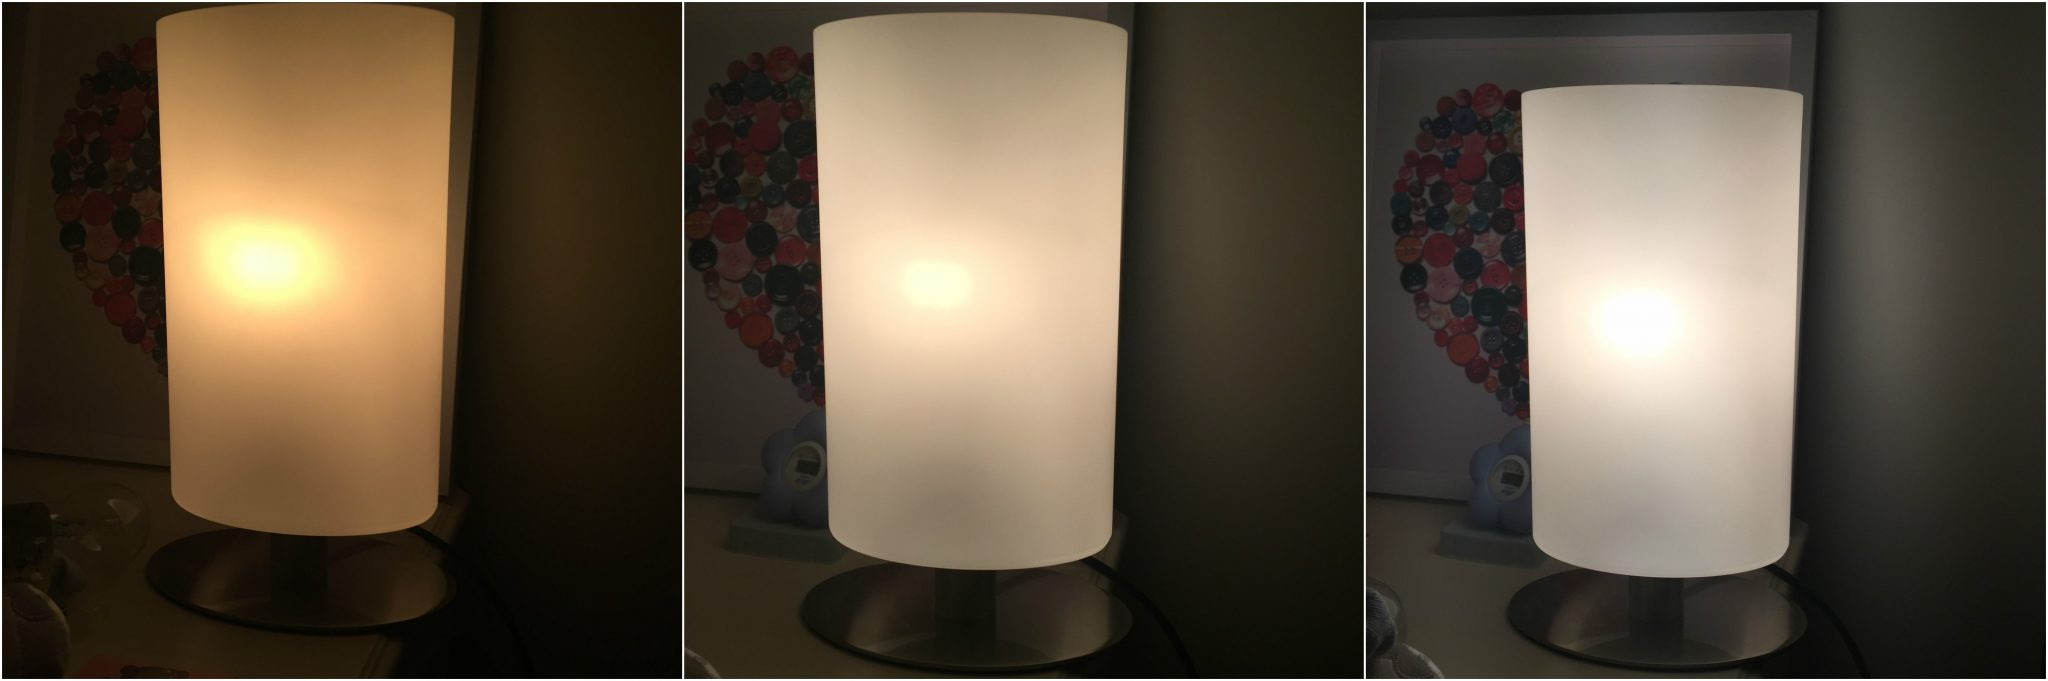 Dimmable Table Lamp Review - Pretty Big Butterflies